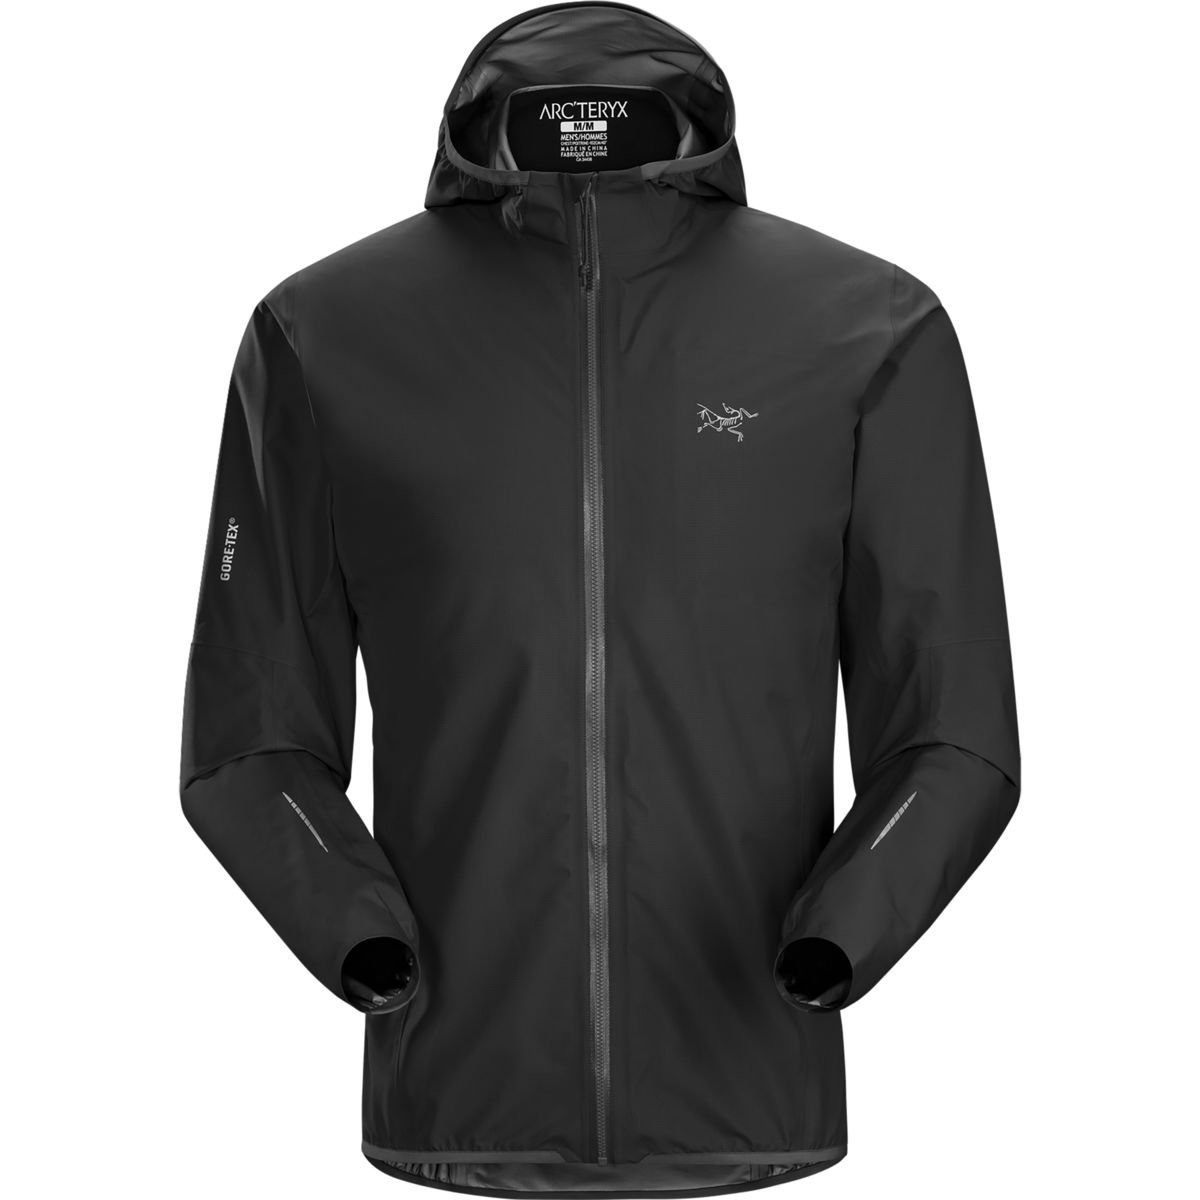 Arcteryx Norvan Jacket – Men 's B0163TSIAK  Black S